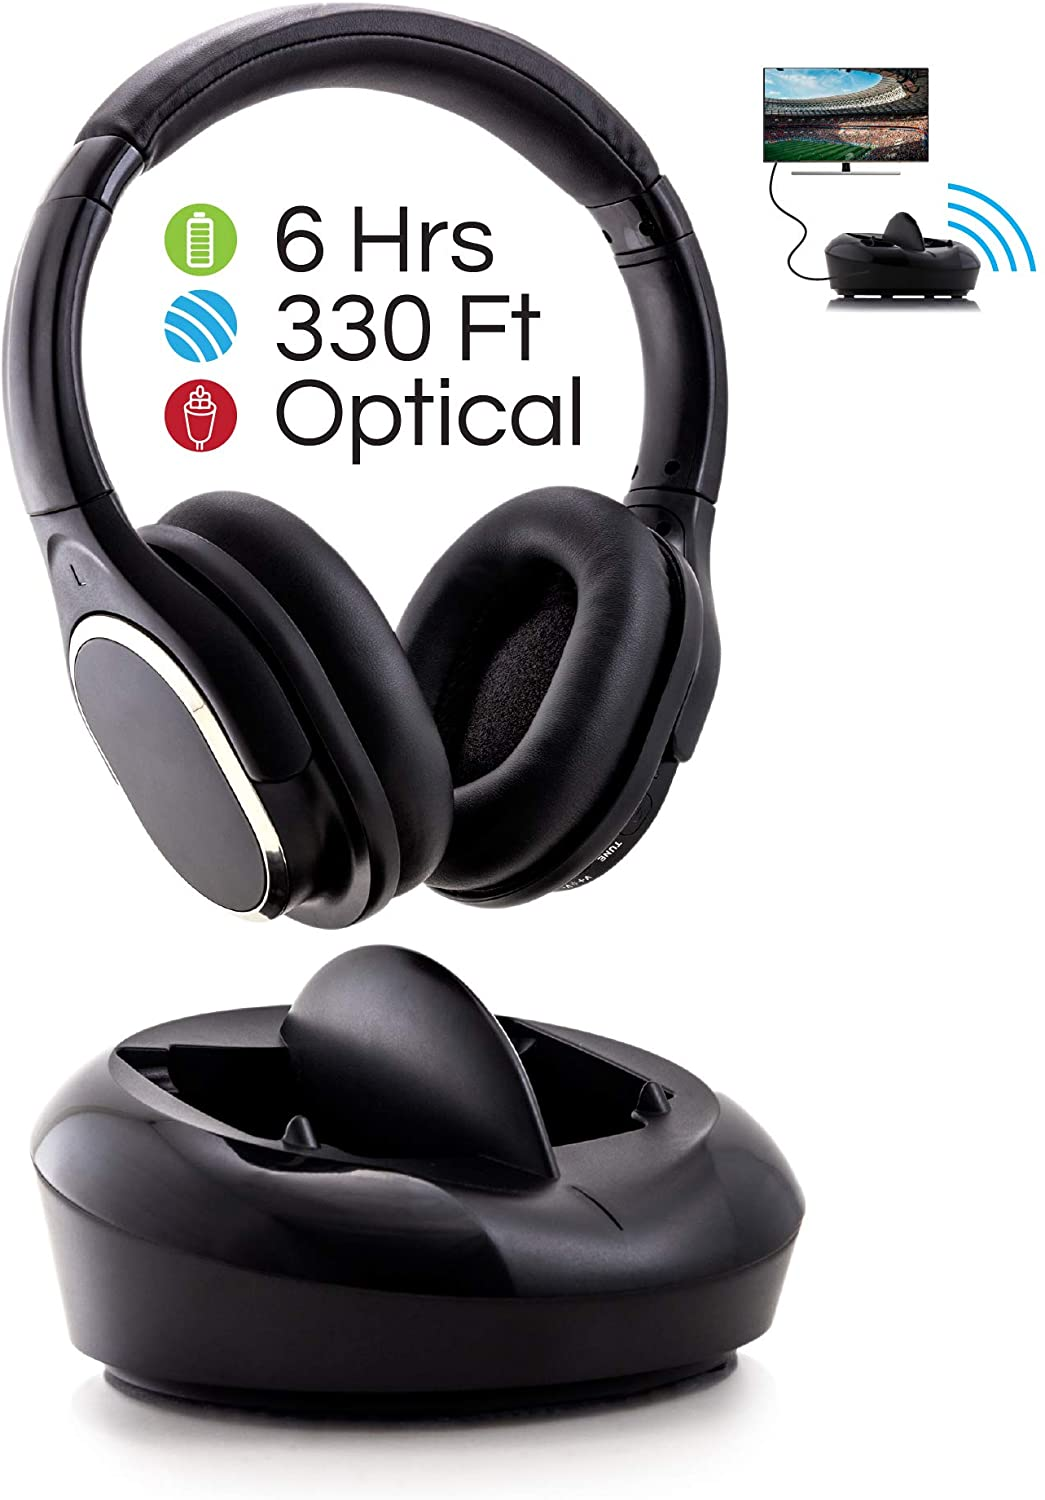 POP Wireless Over-Ear TV Headphones with Charging Dock 2.4GHz RF TV Headset, 330ft Range, Digital Optical Input, Light Weight and Extra Padding for Superior Comfort, Easy Set Up, 6 Hour Battery